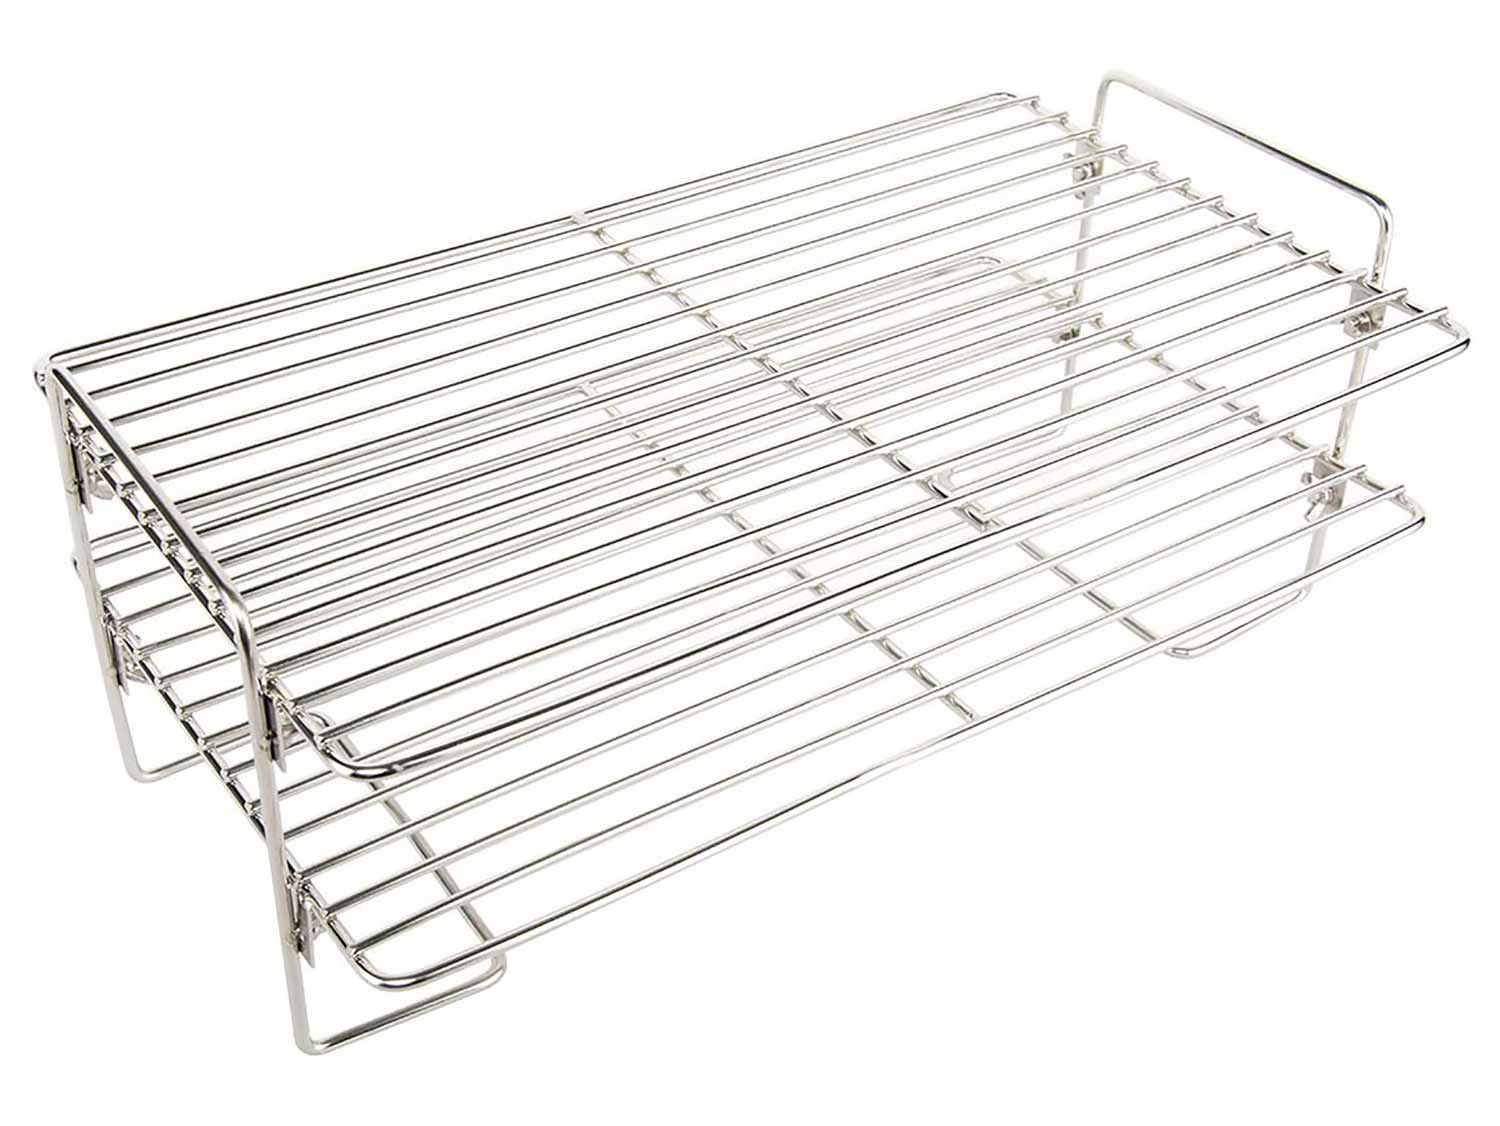 The Stanboil 17-inch stainless steel smoker shelf